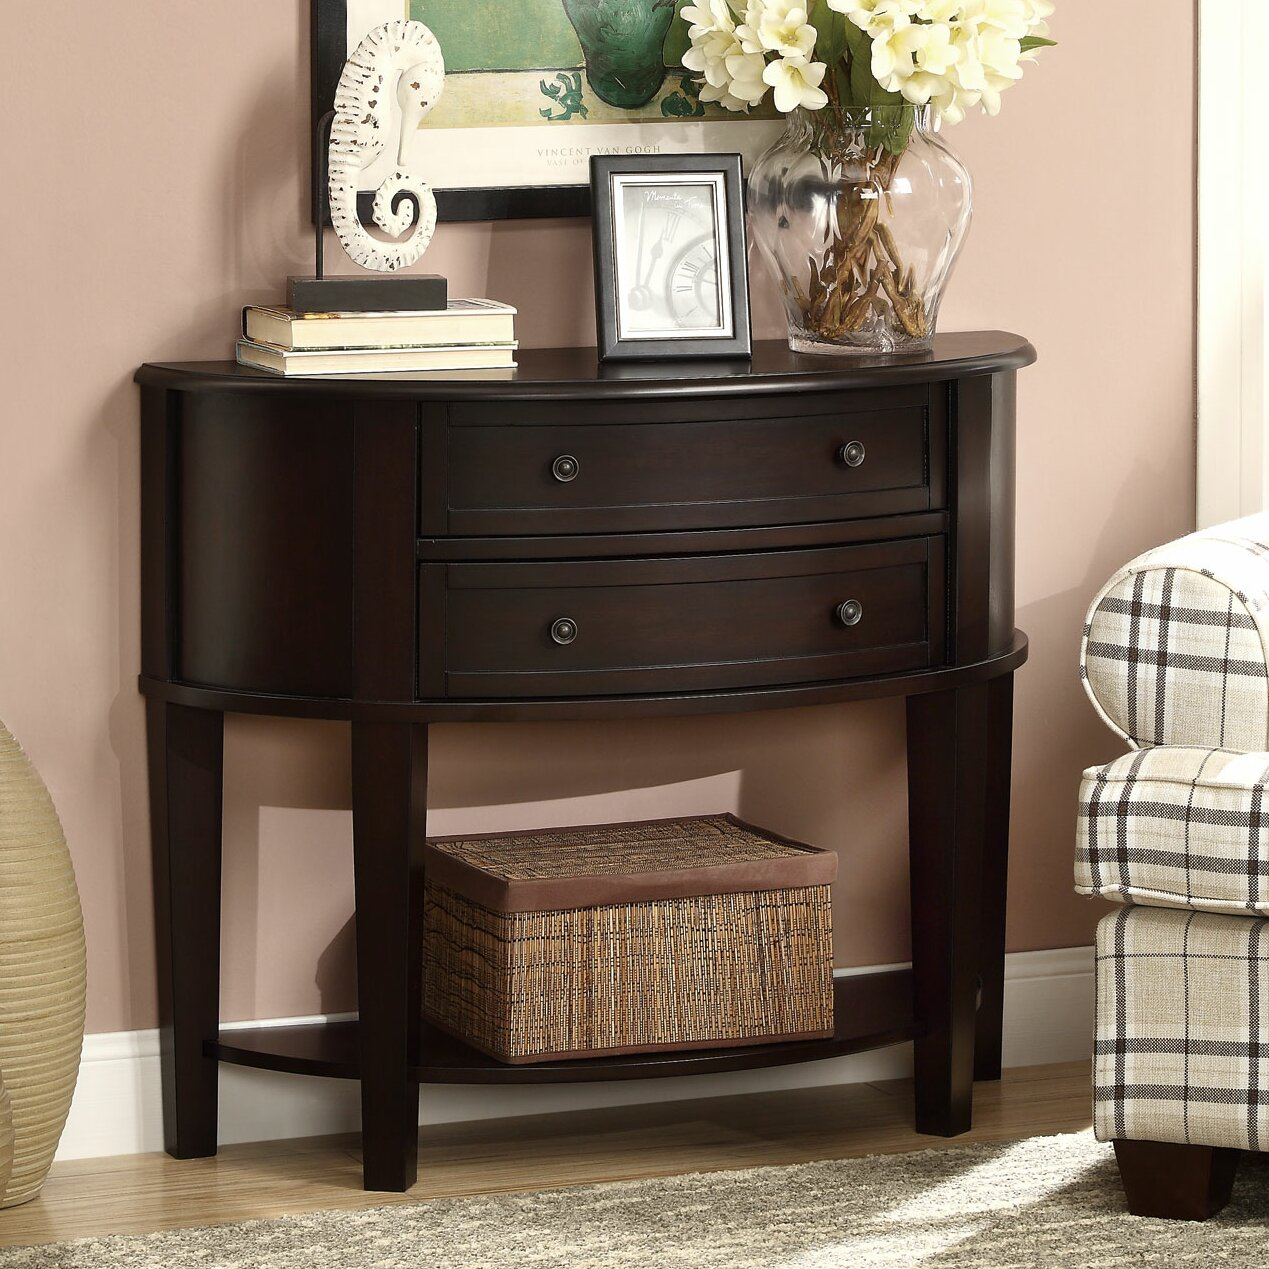 Wildon Home Console Table Reviews Wayfair